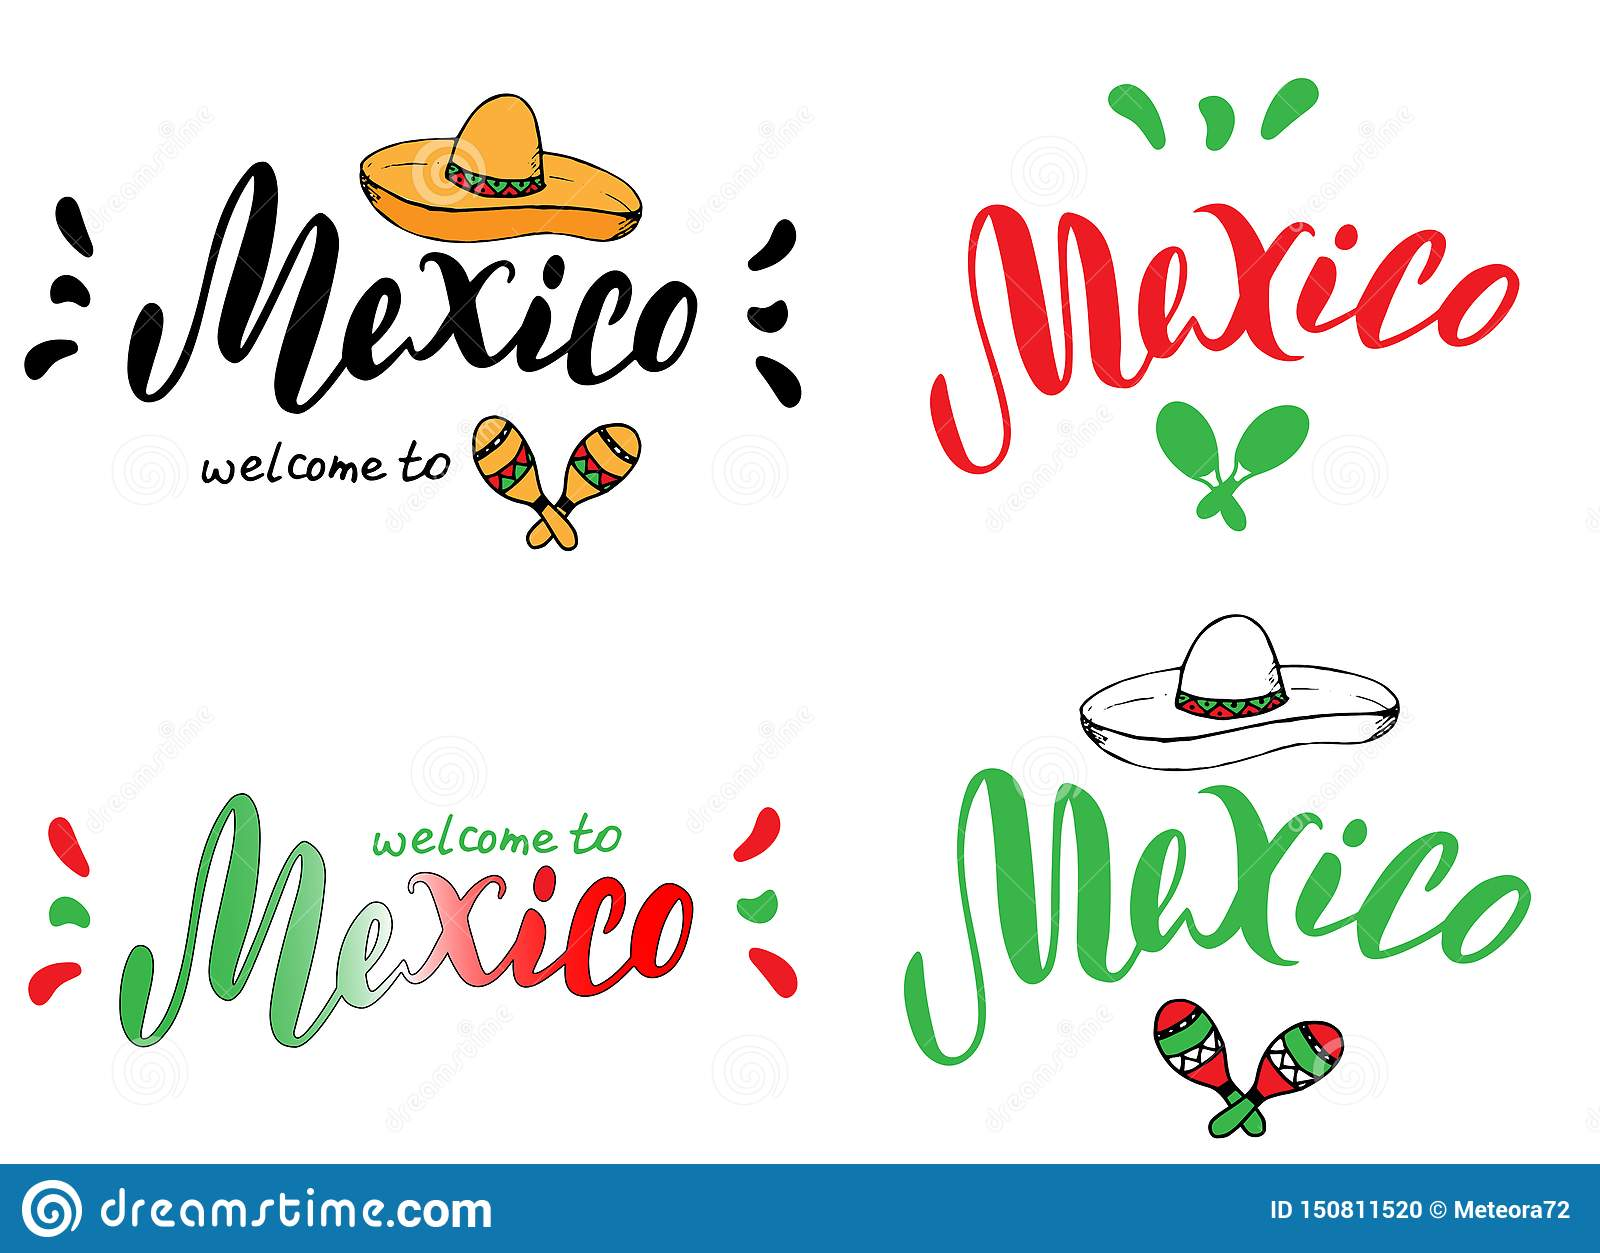 Mexico typography set design template. Tourism website or brochure banner. Print for t-shirt, sticker, magnet, postcard design.